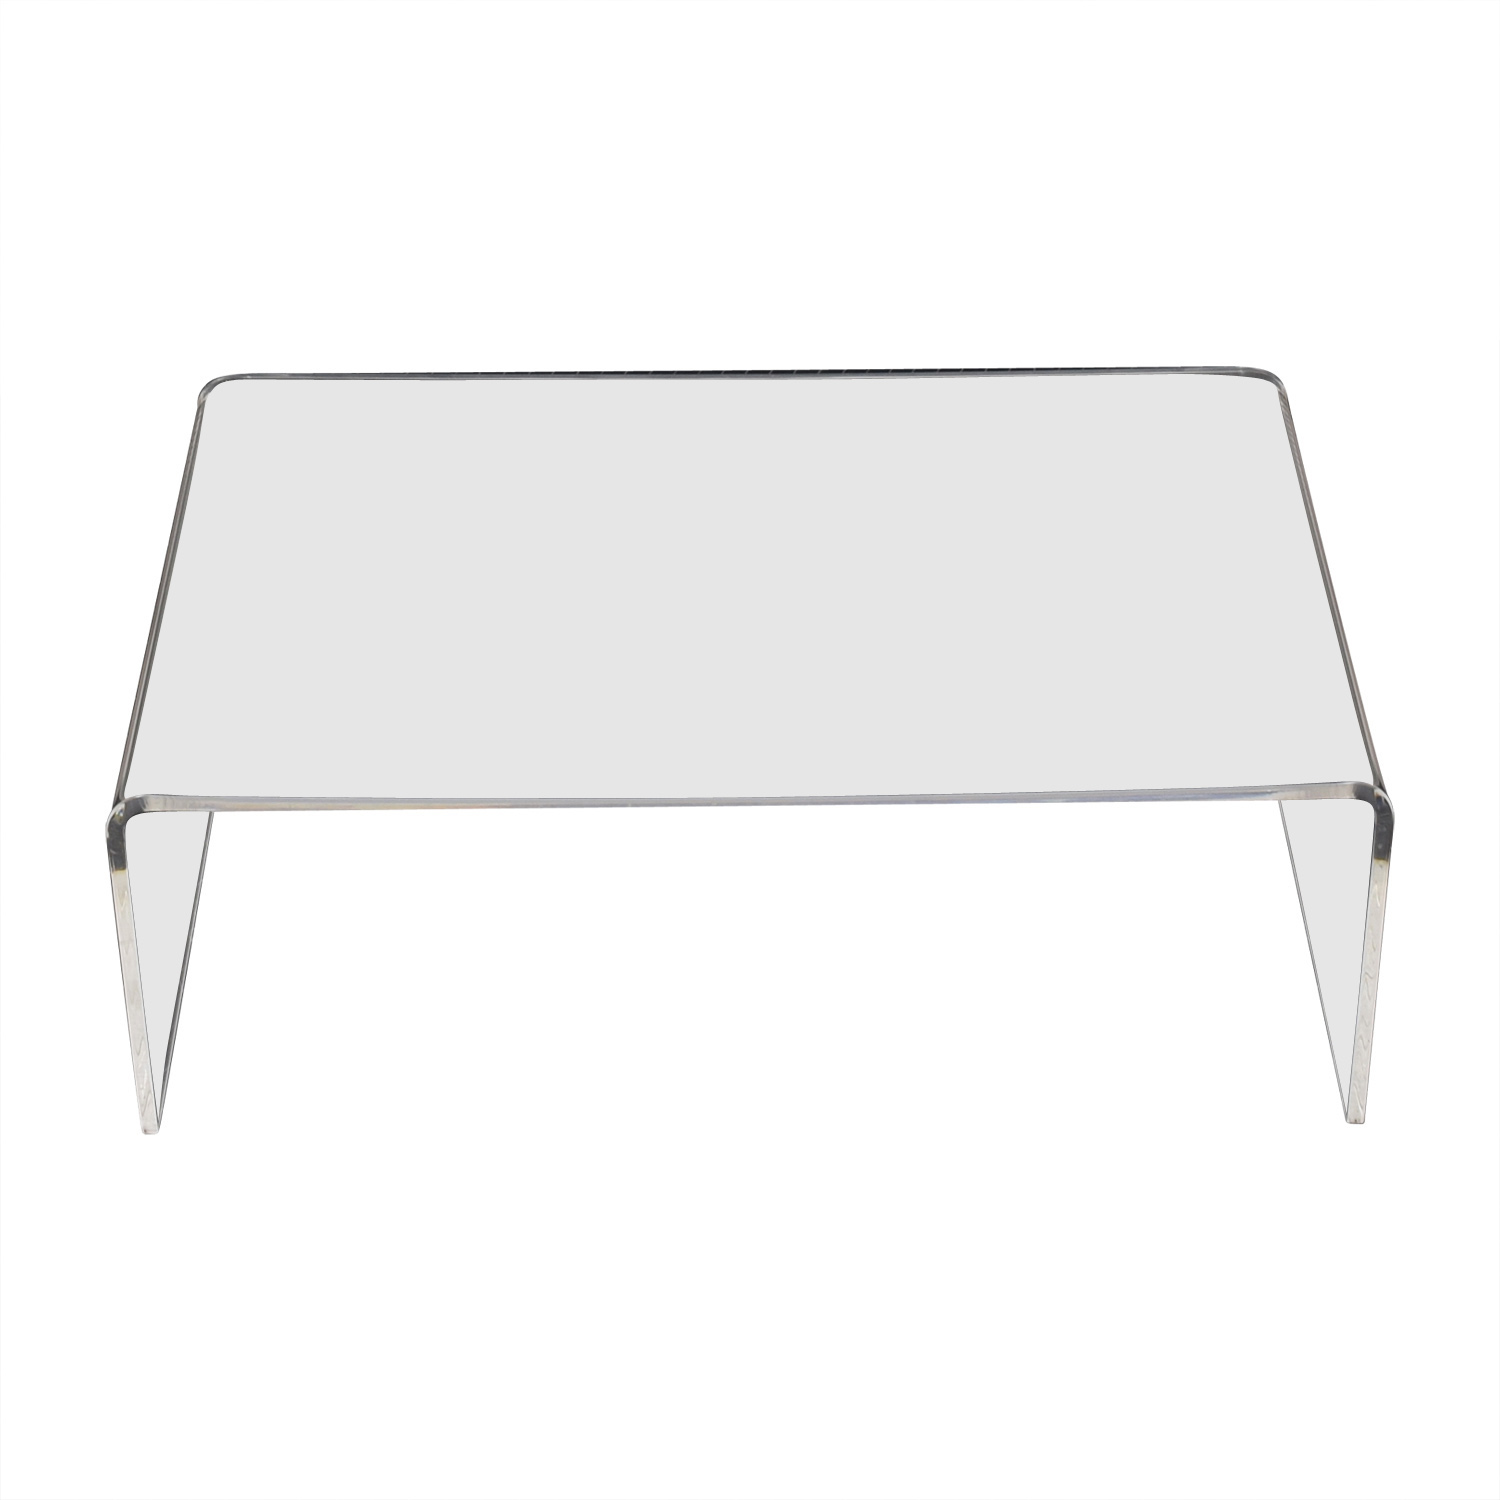 CB2 Acrylic Ghost Coffee Table / Coffee Tables